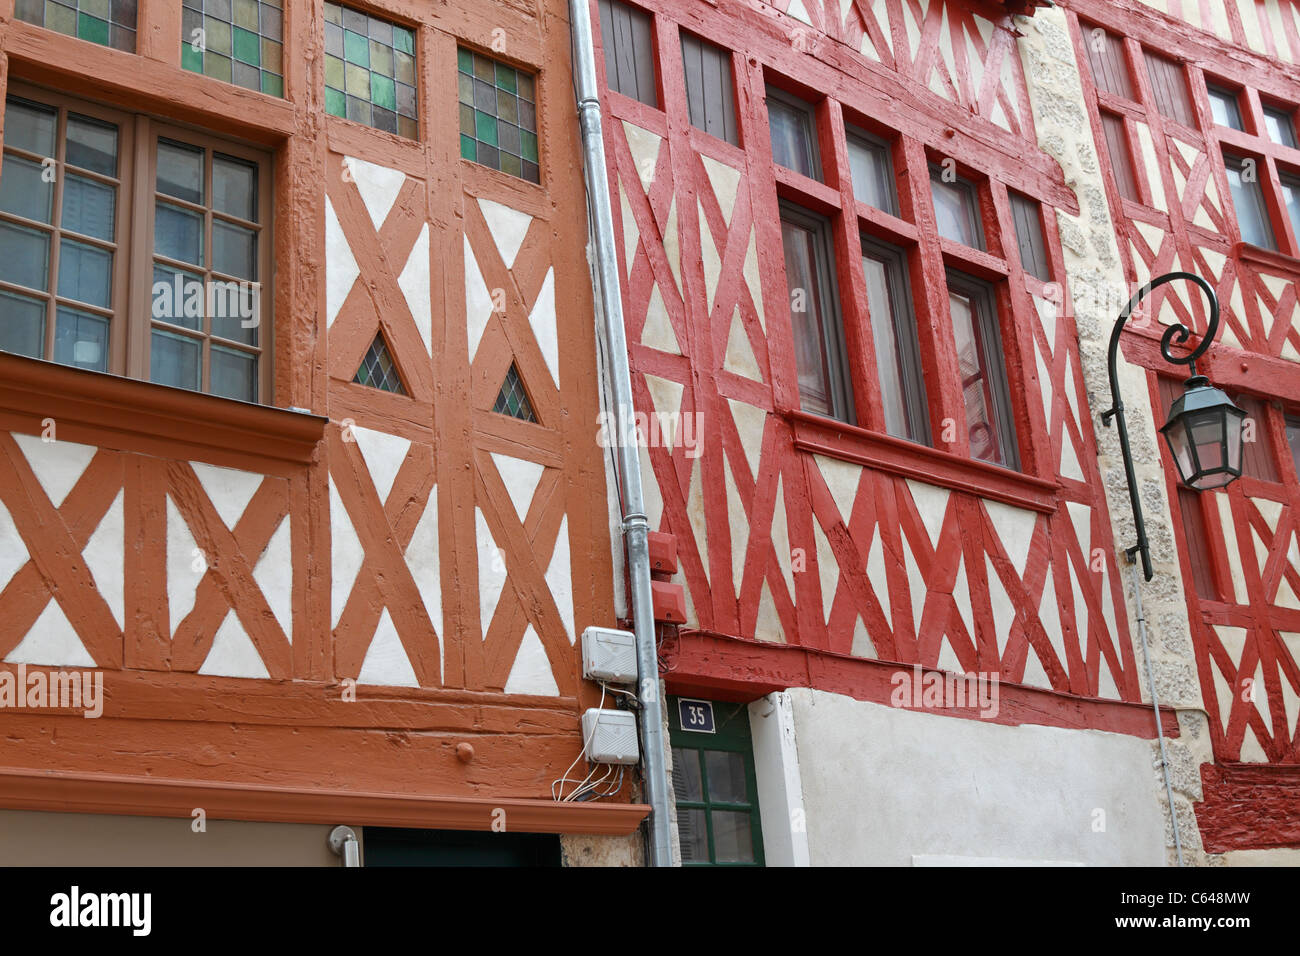 Half timbered buildings, Orleans, Loiret, France. - Stock Image